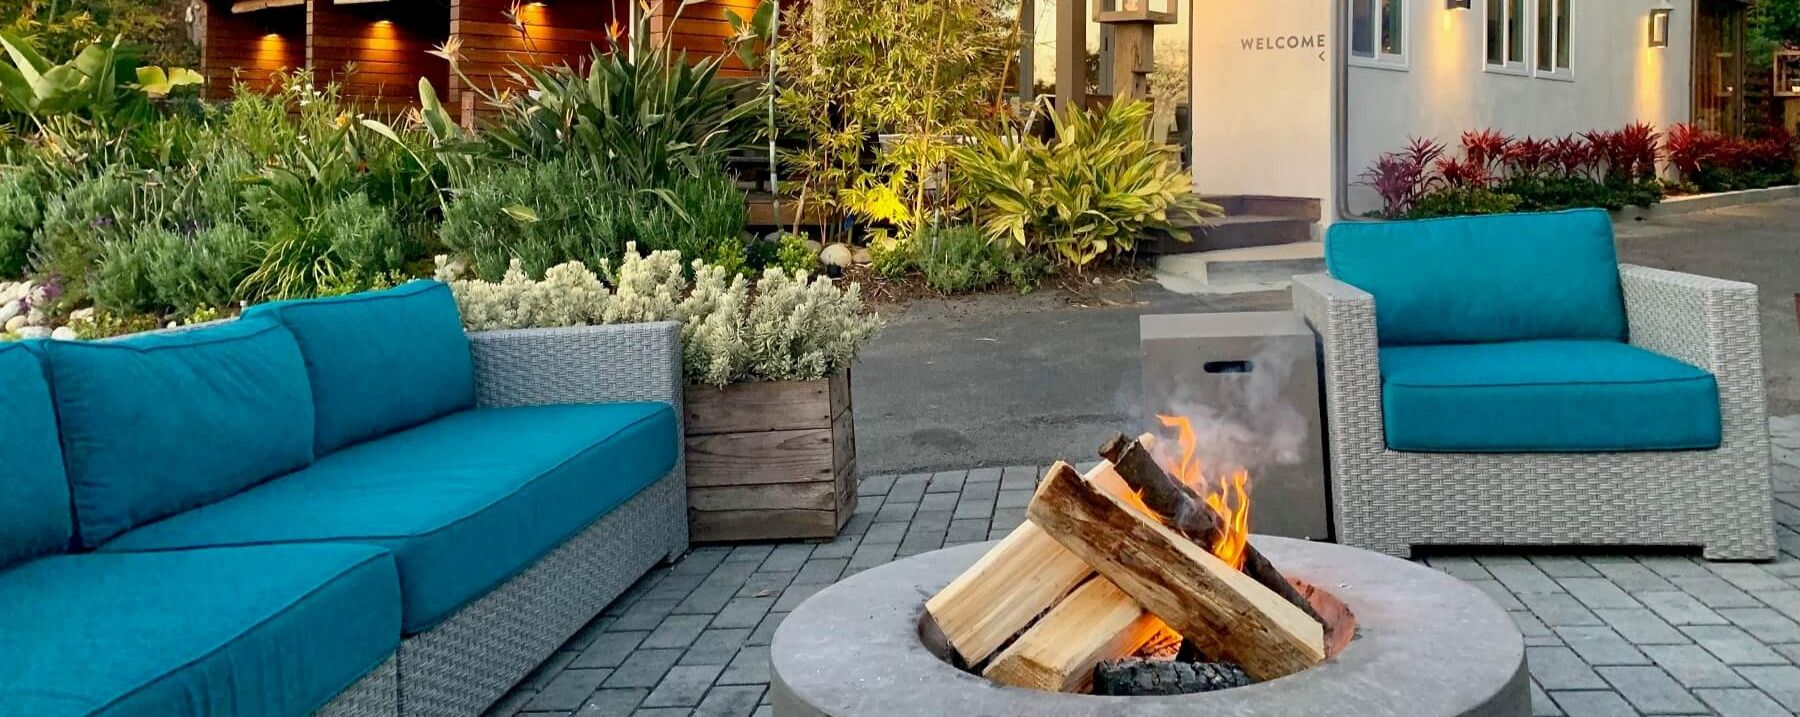 outdoor patio and with fire pit